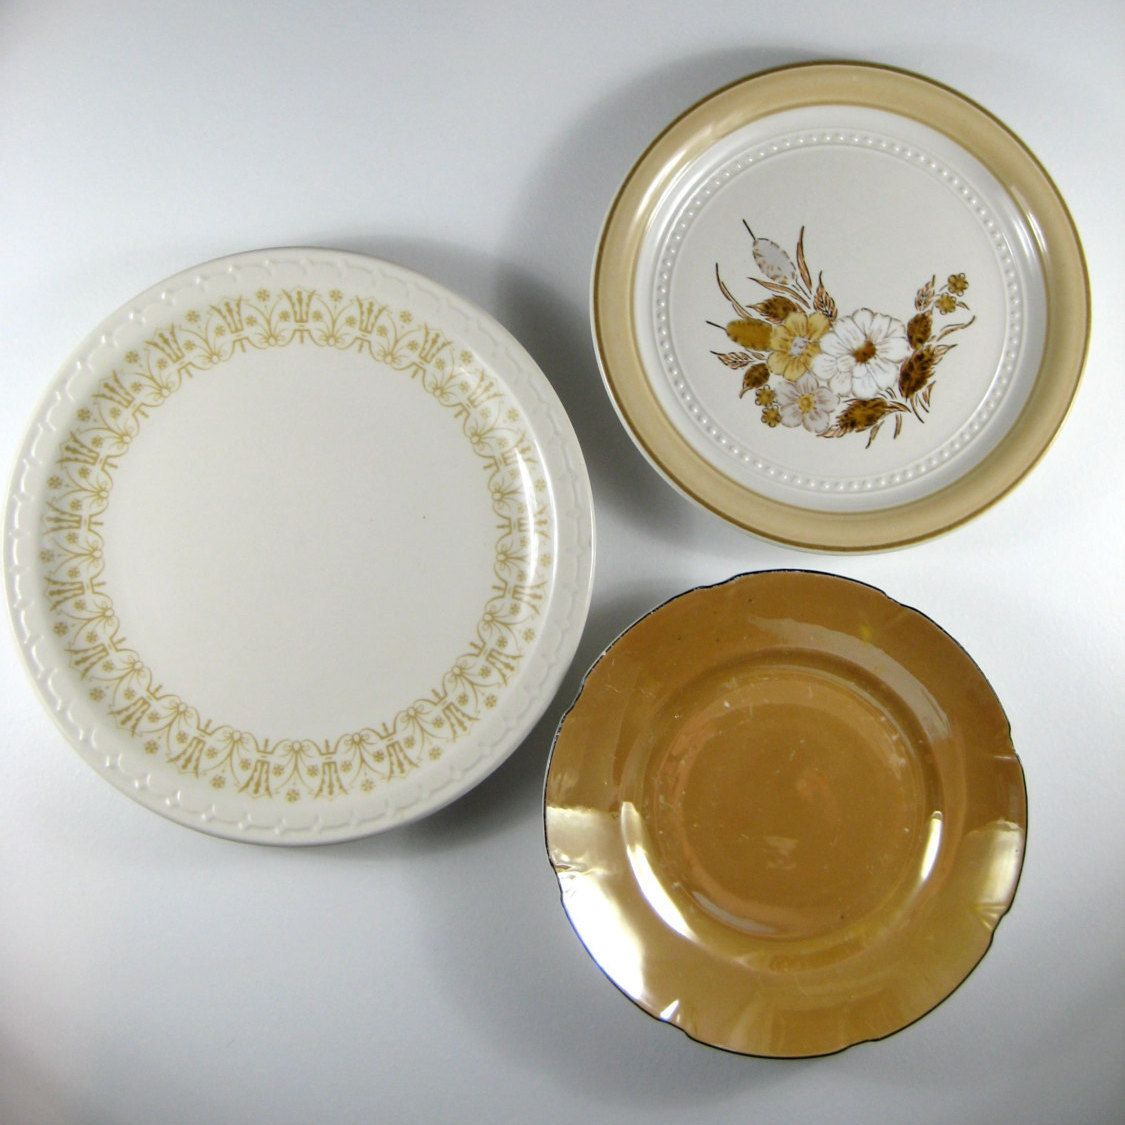 White Decorative Wall Plates Gold Peach Tan White Decorative Plates Mismatched Plates Vintage